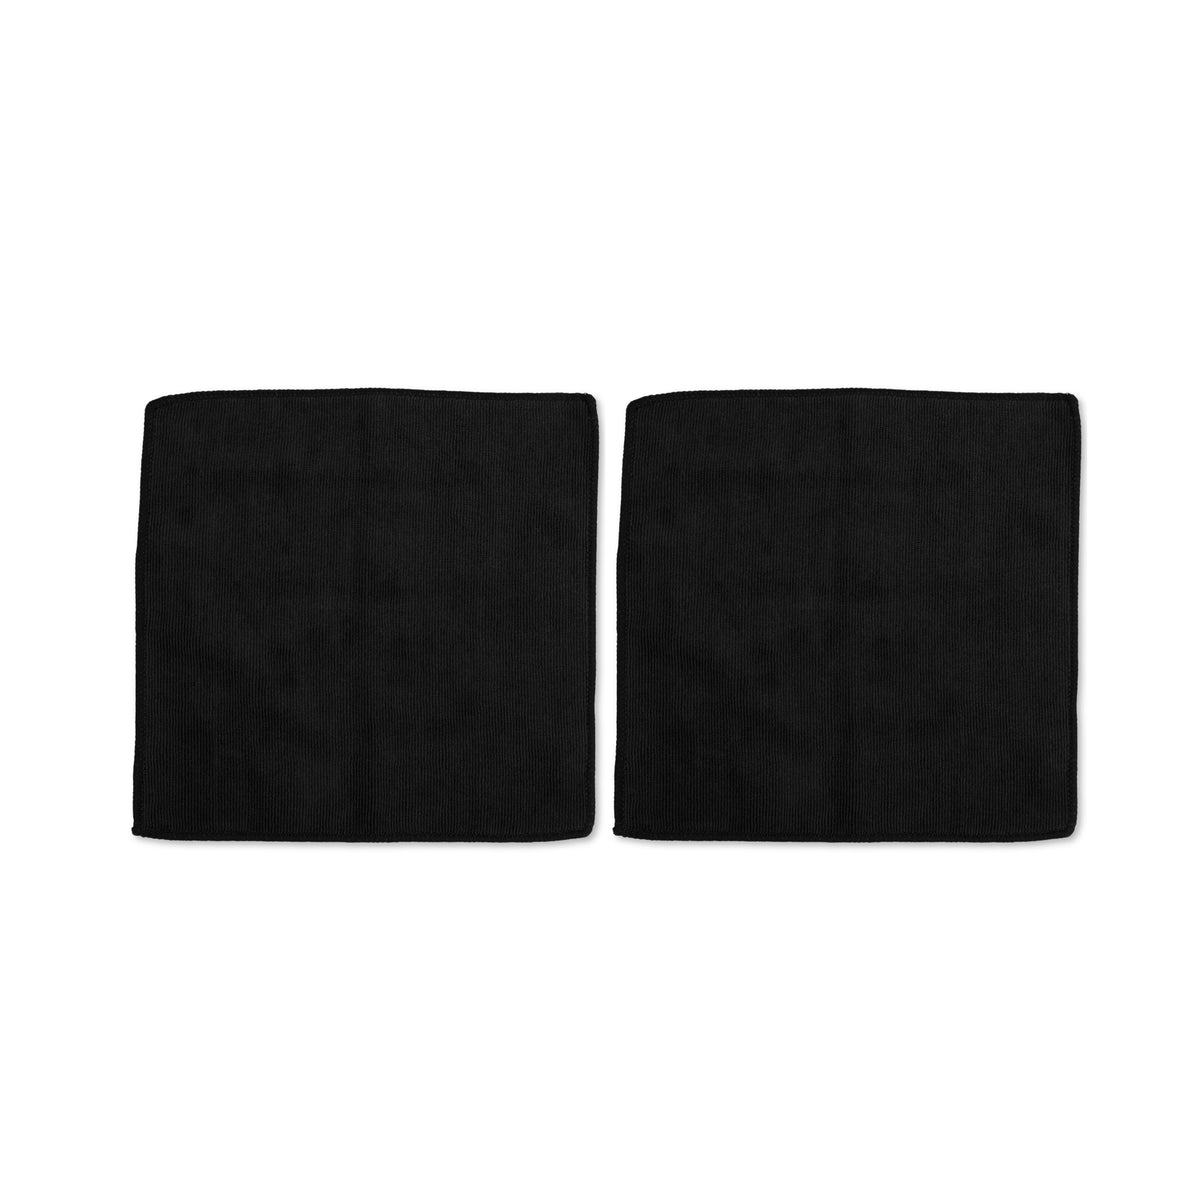 EspressoWorks 100% Microfiber Cleaning Cloths (2 Pack)